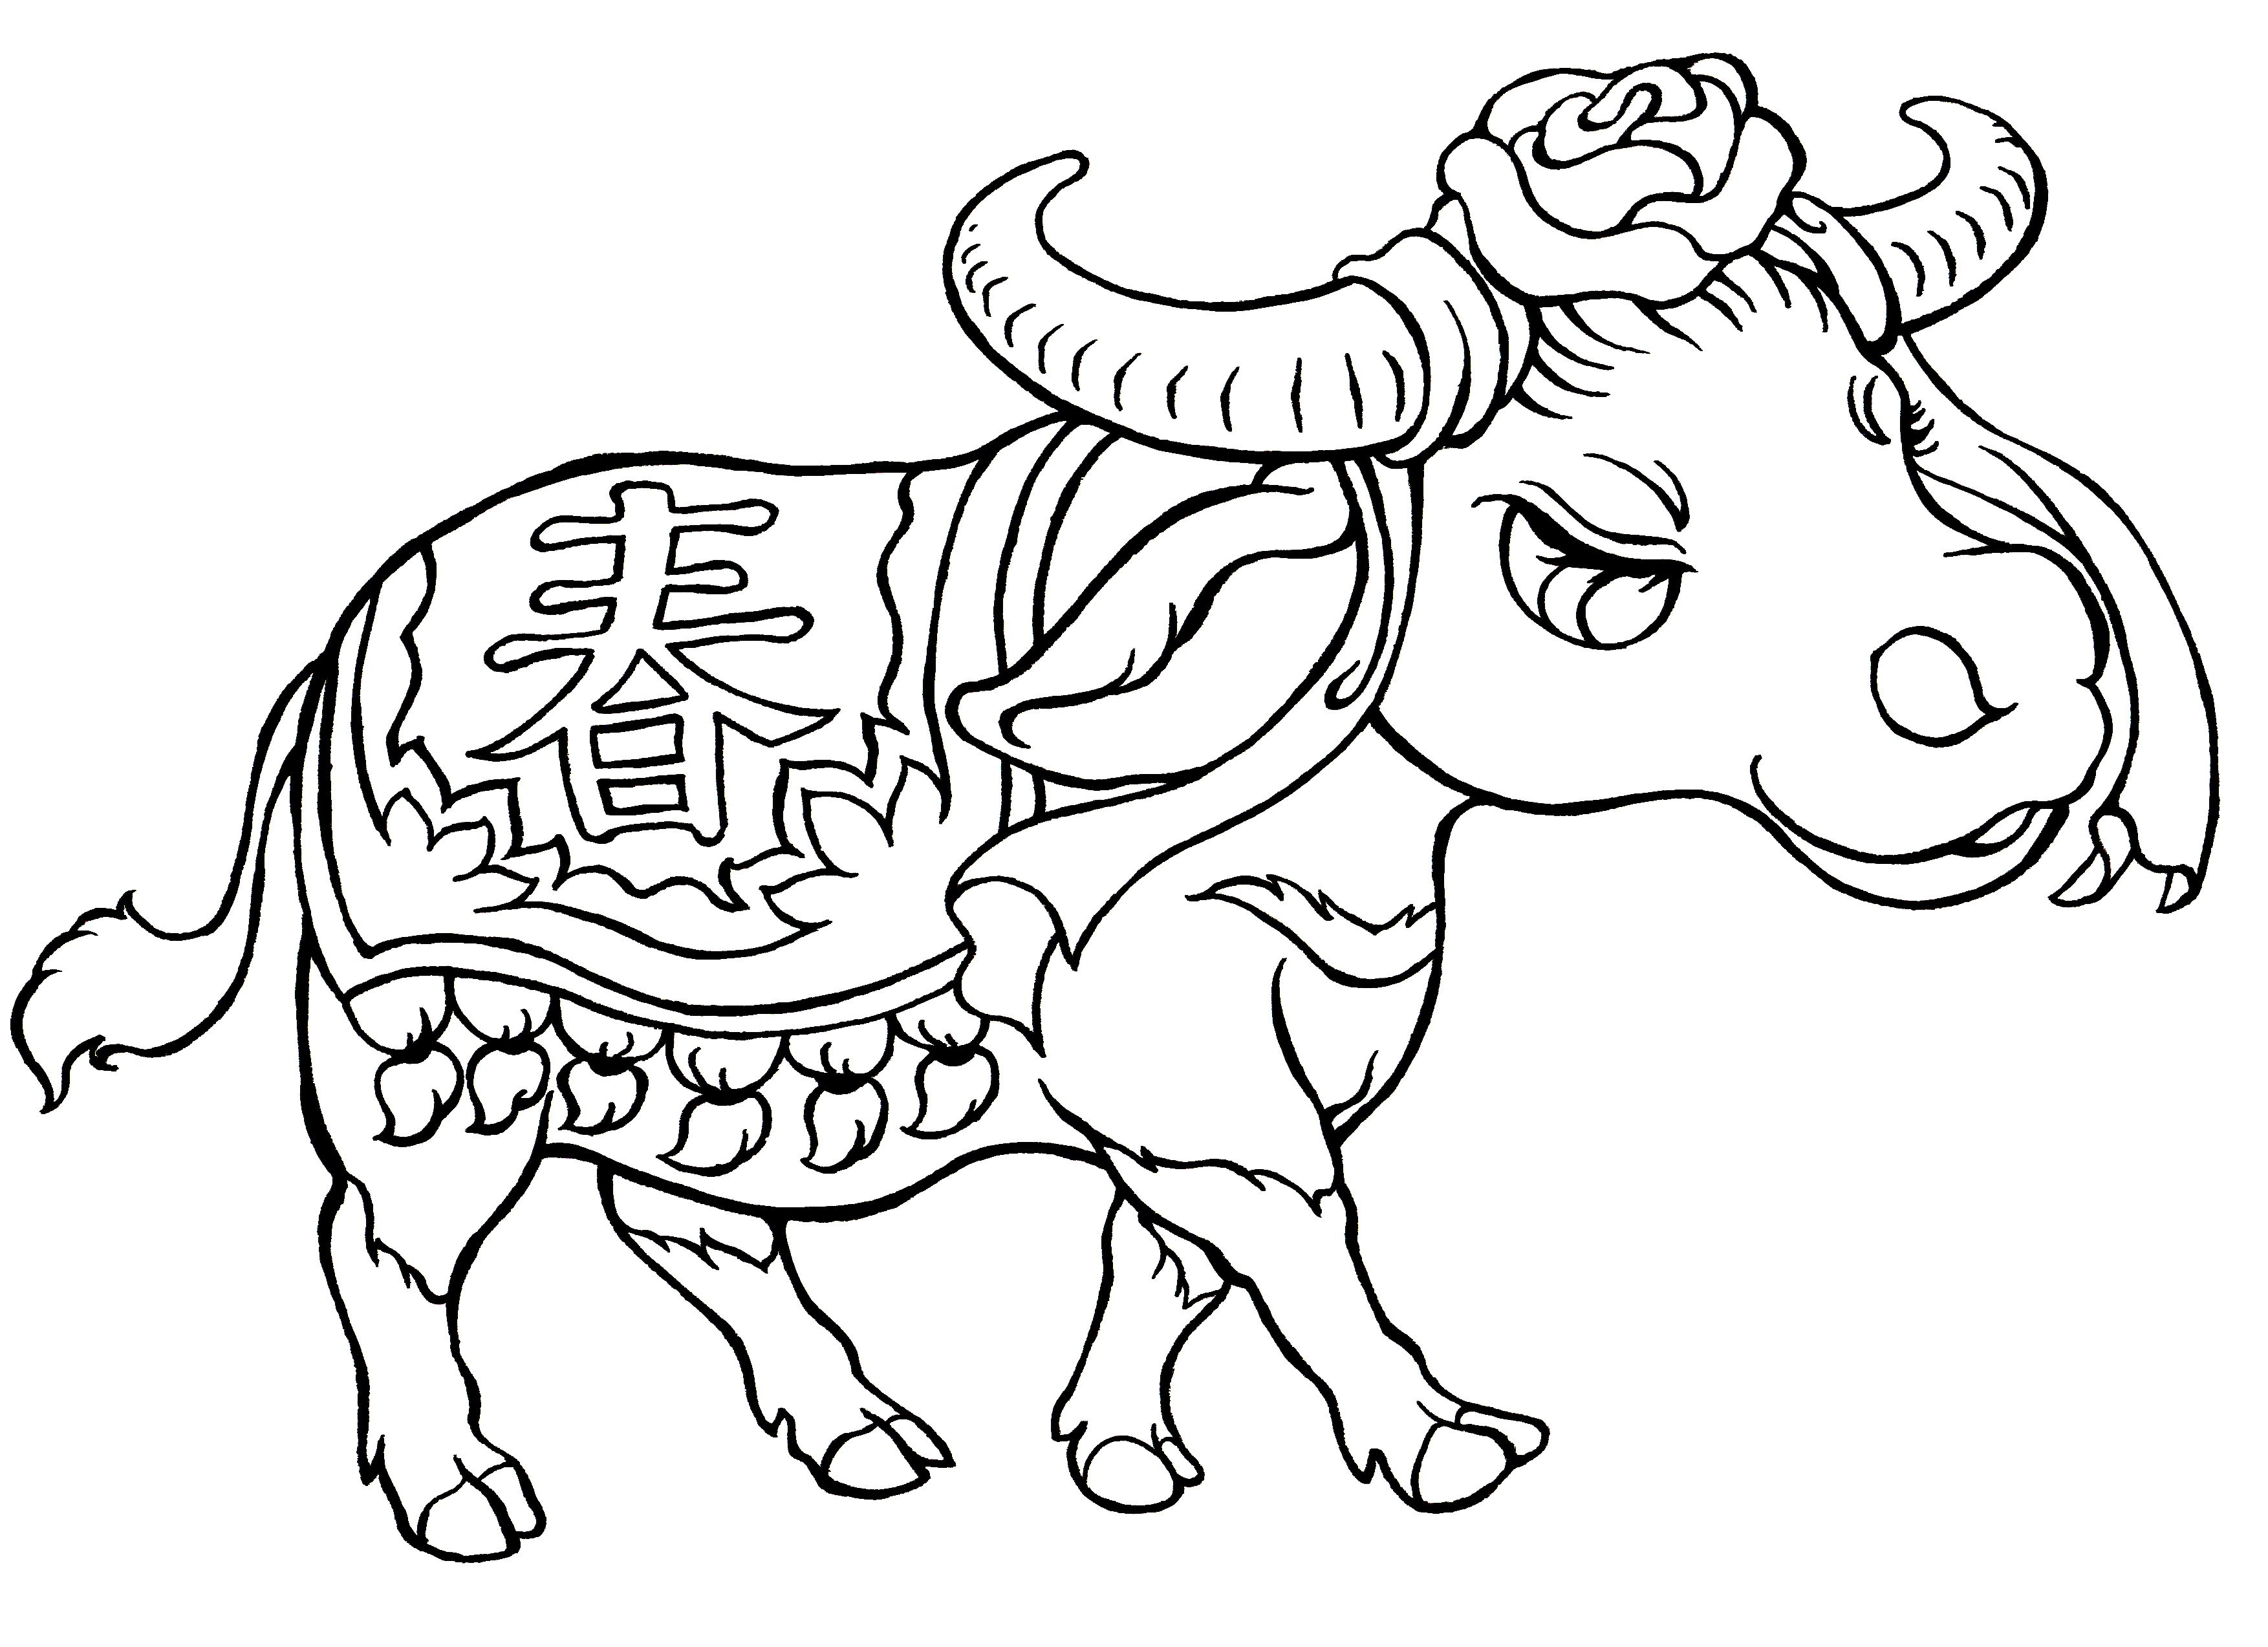 Year of the OX. FREE colouring sheet for children from Snowflake Books -  https://snowflakebooks.co.uk/… | Coloring sheets, Free coloring sheets, Ox  chinese zodiac